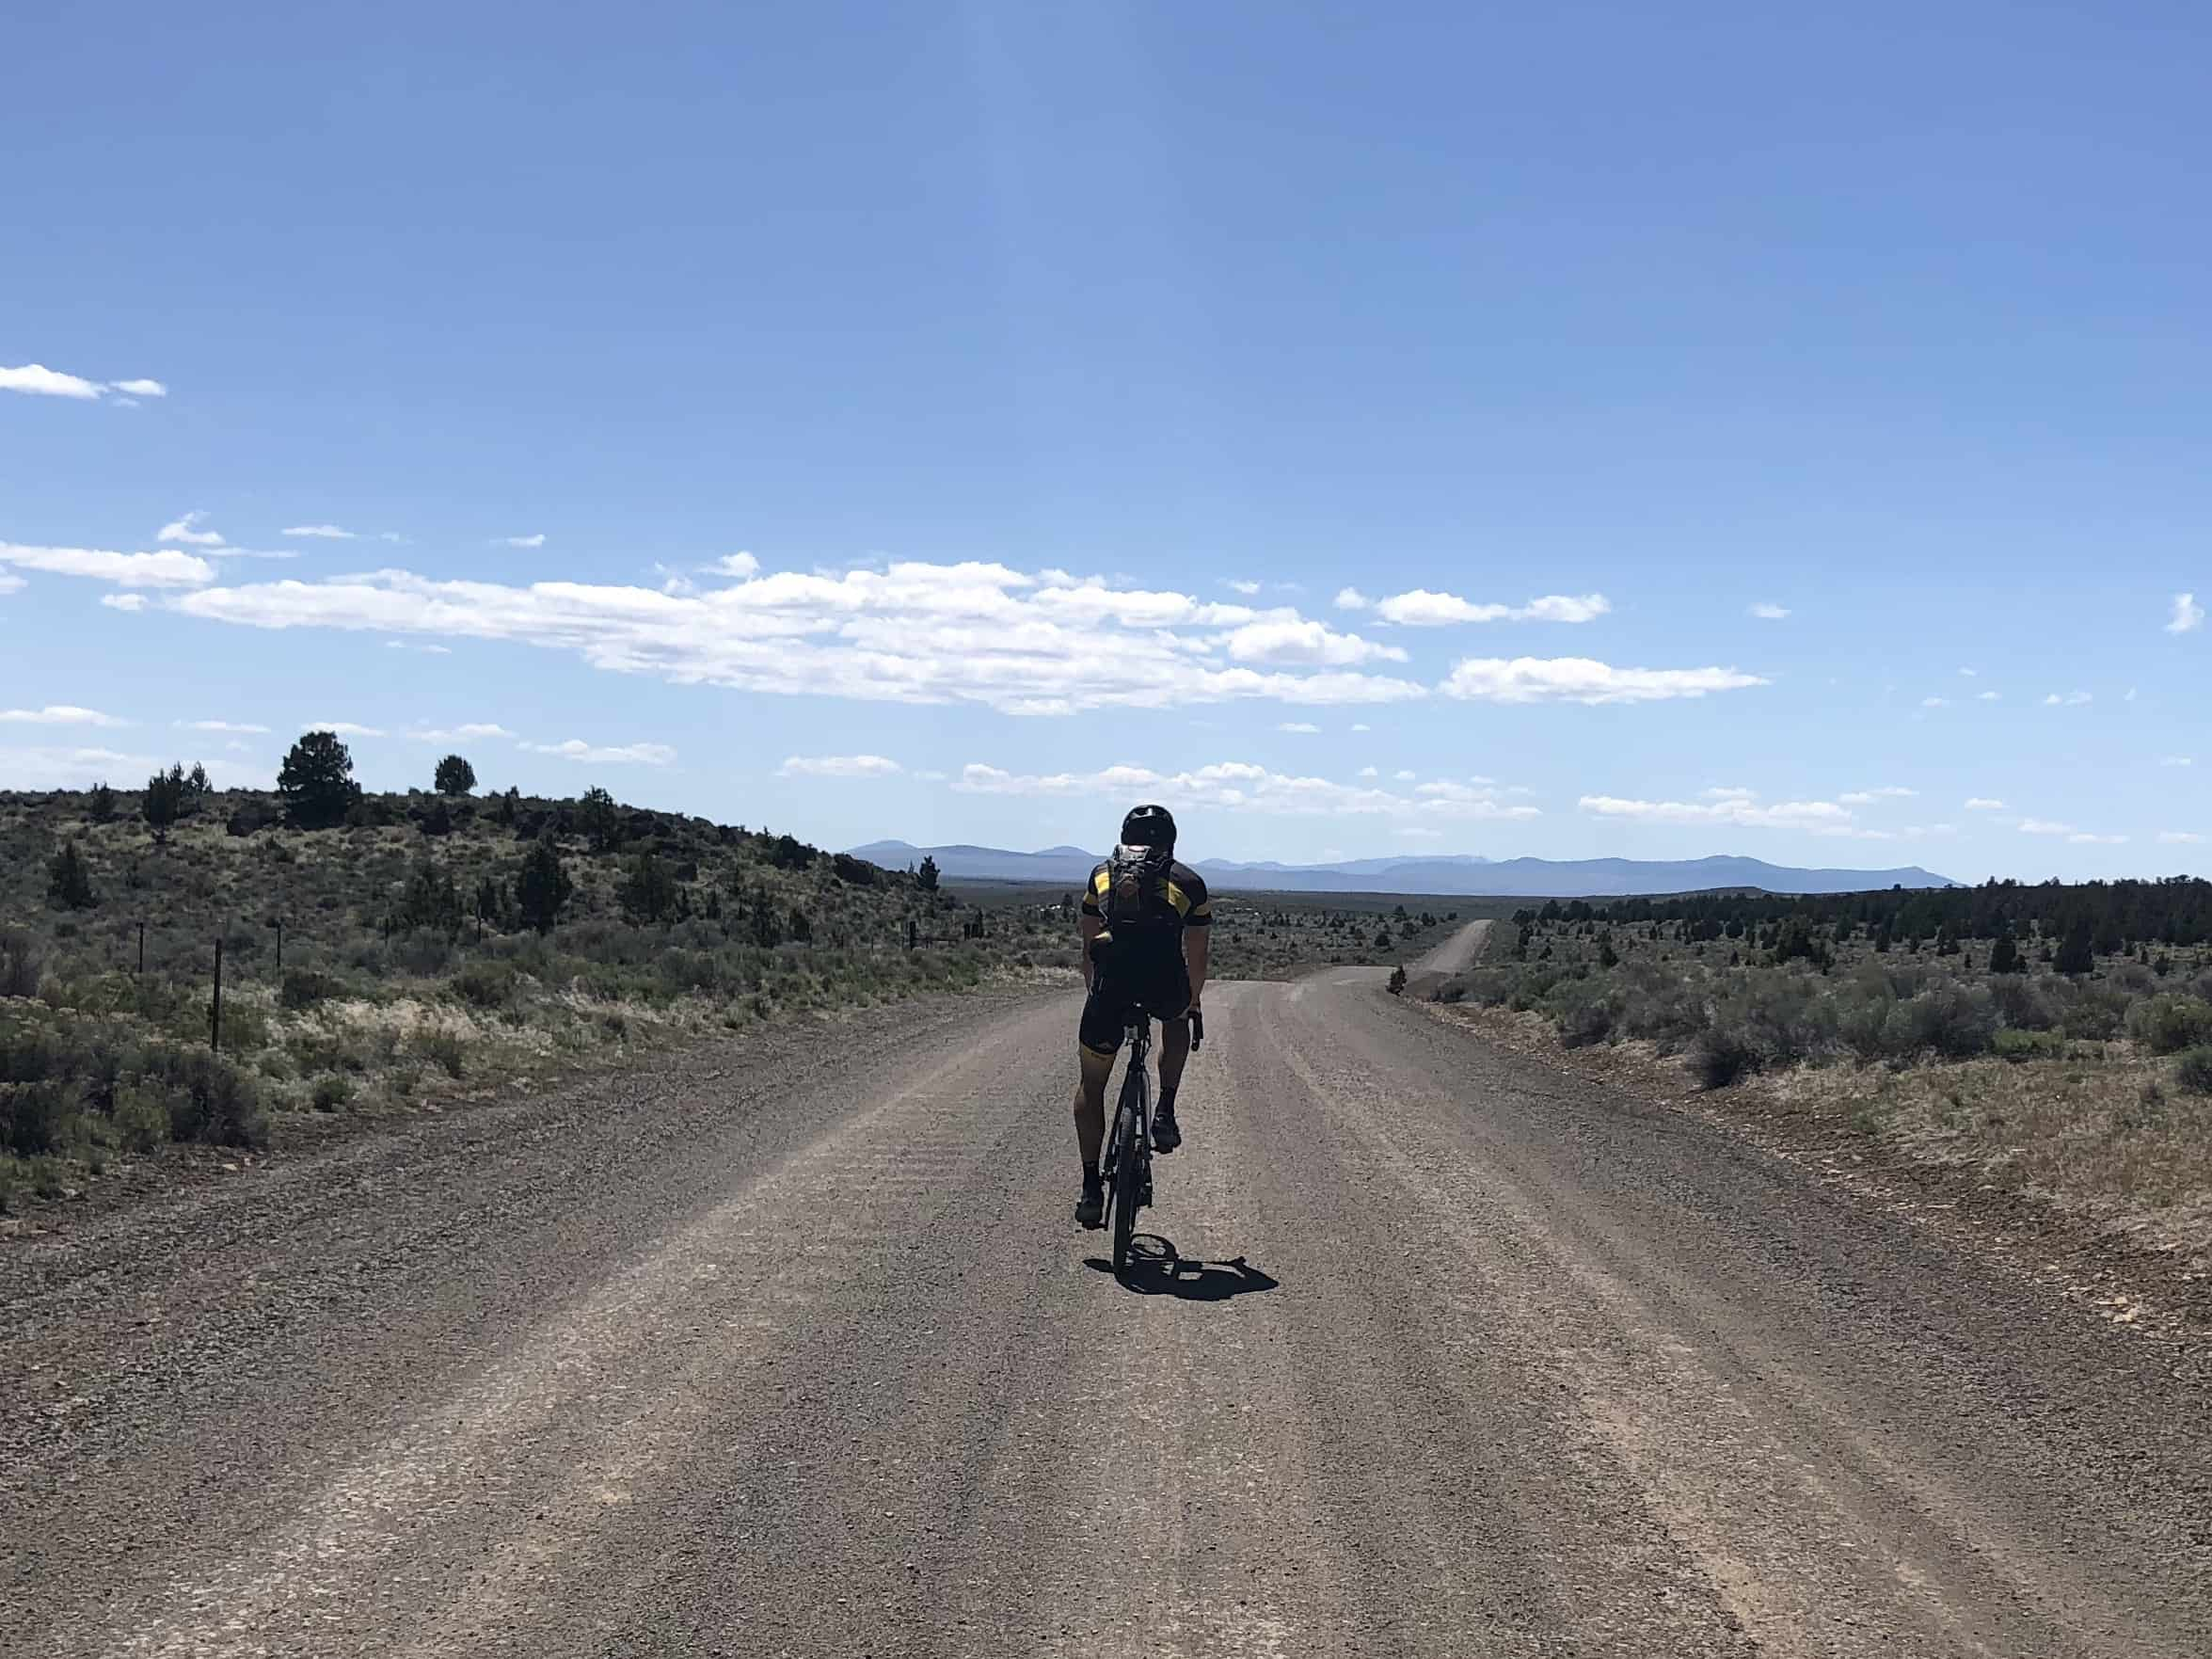 Riding the gravel road back in towards Brothers, Oregon.